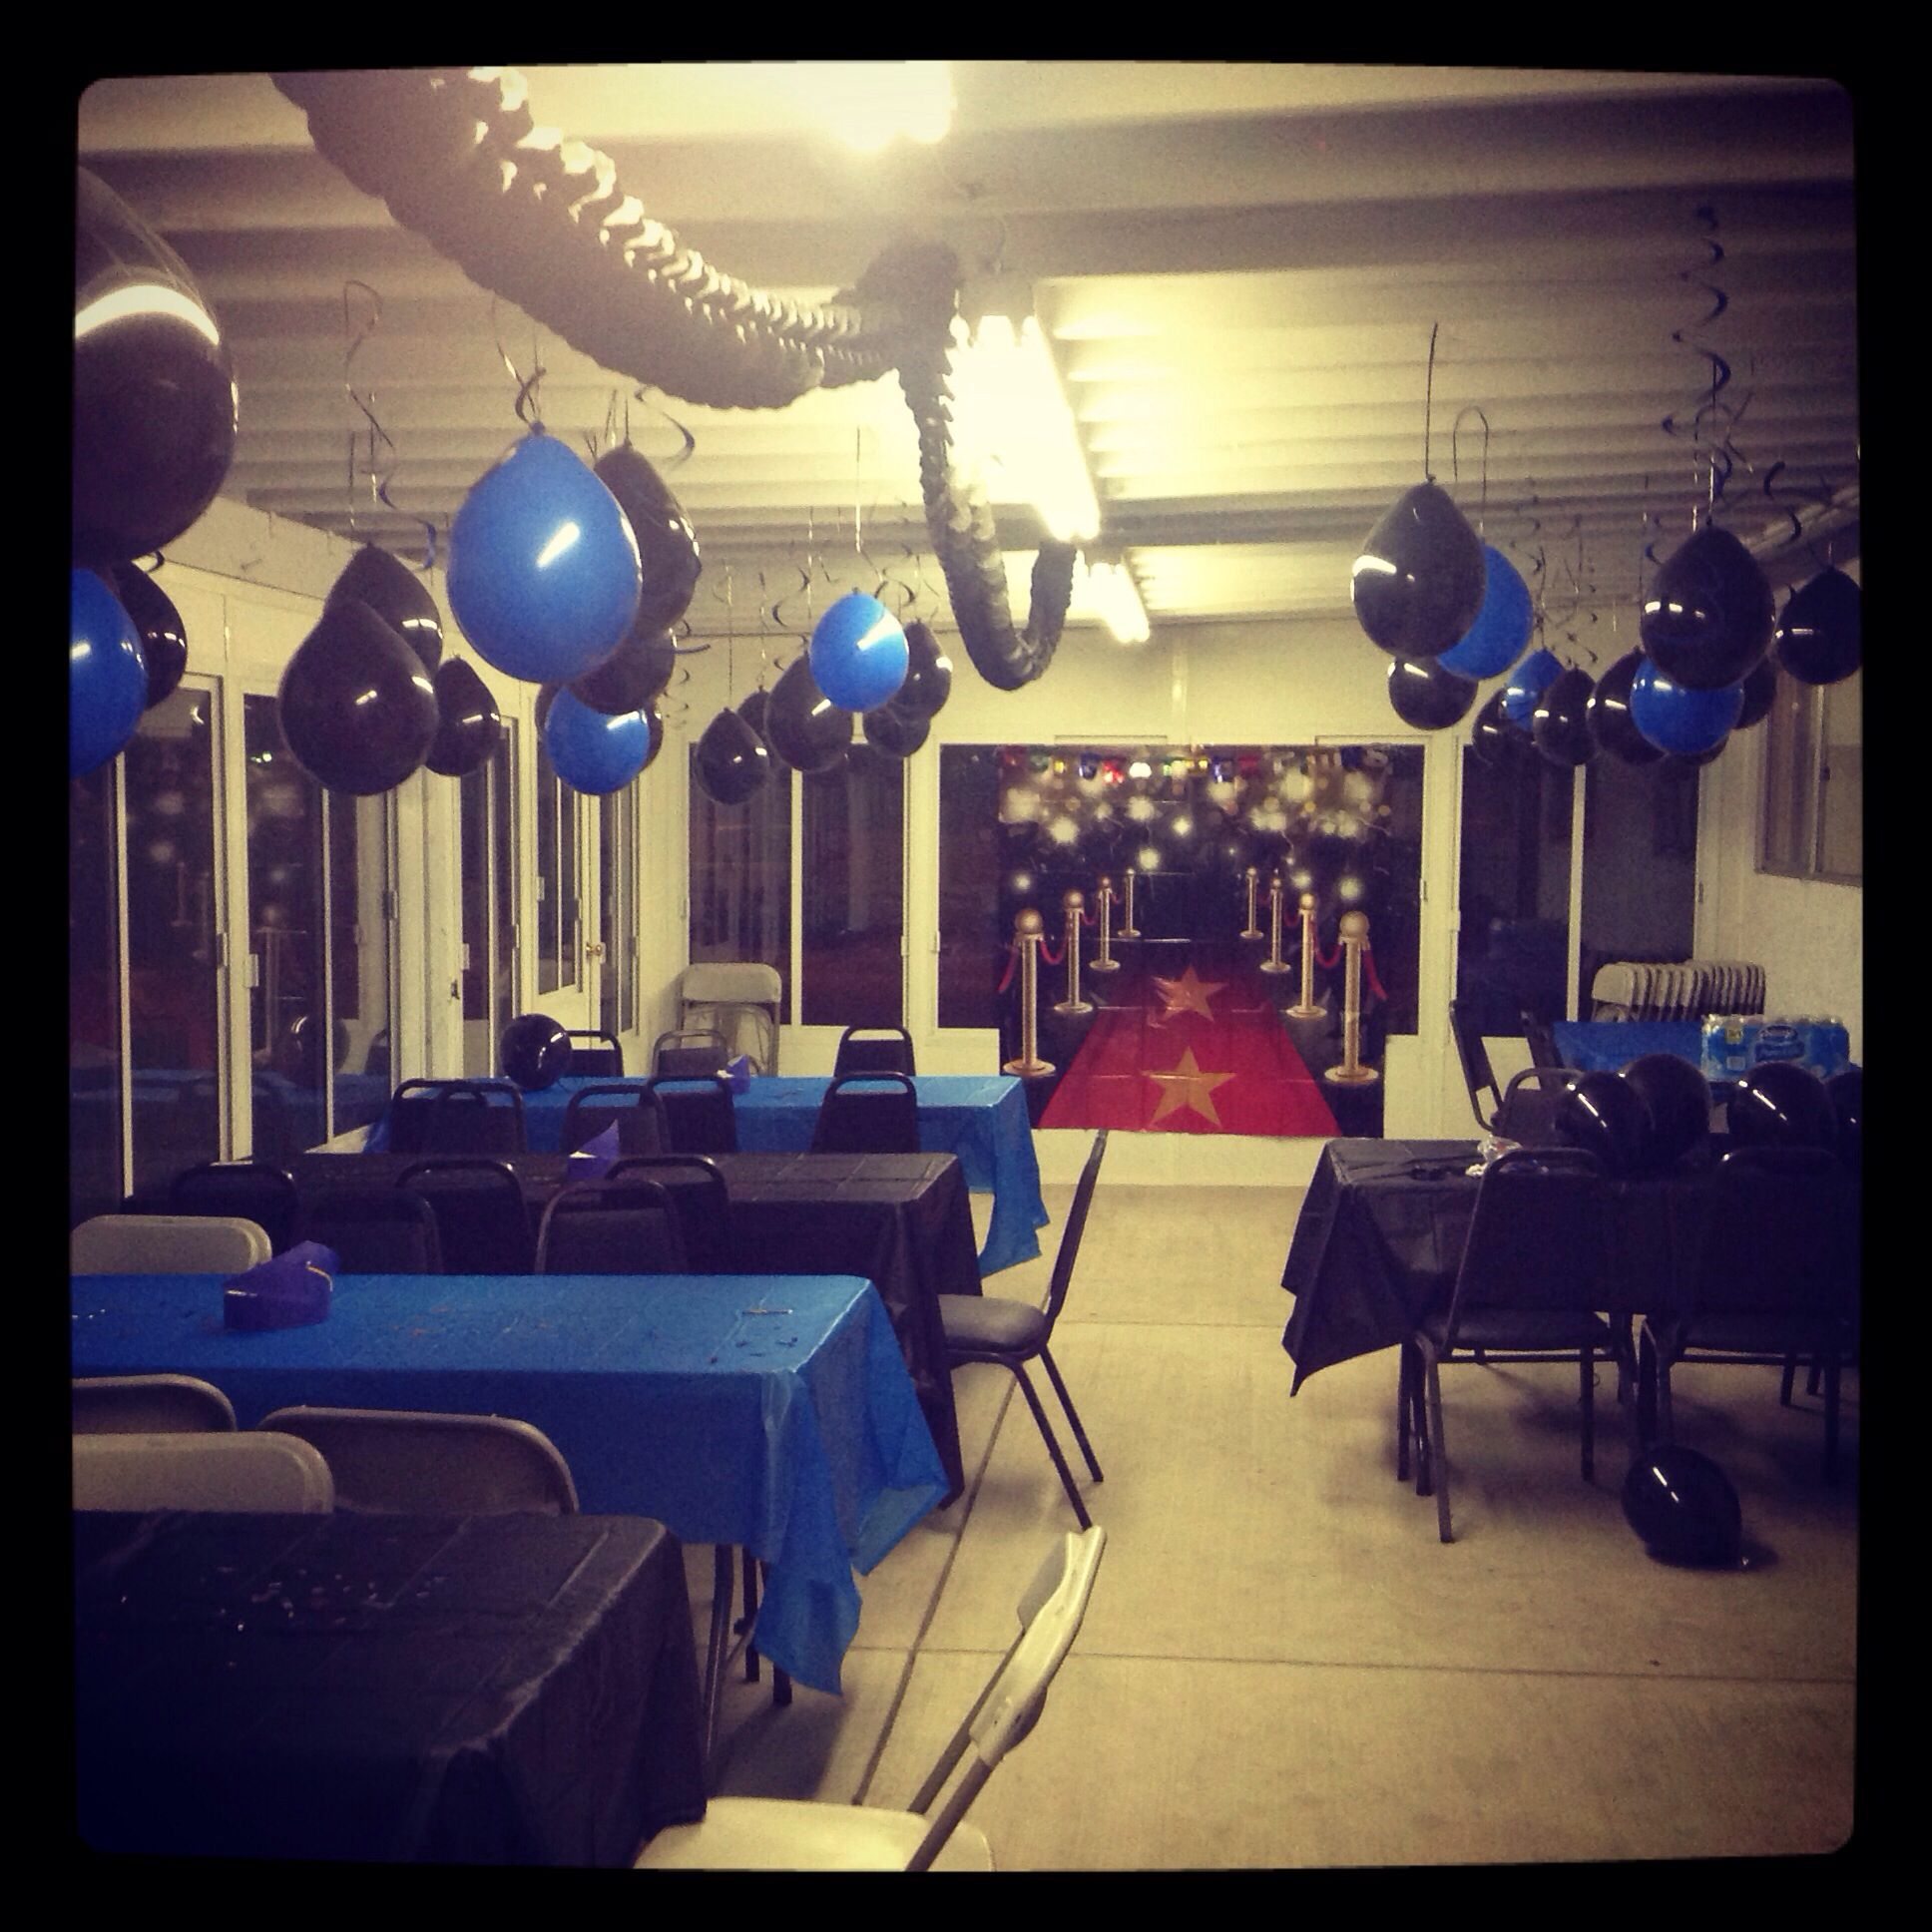 Graduation Decorations With Hanging Balloons DecorationsGraduation GiftsGraduation IdeasHanging